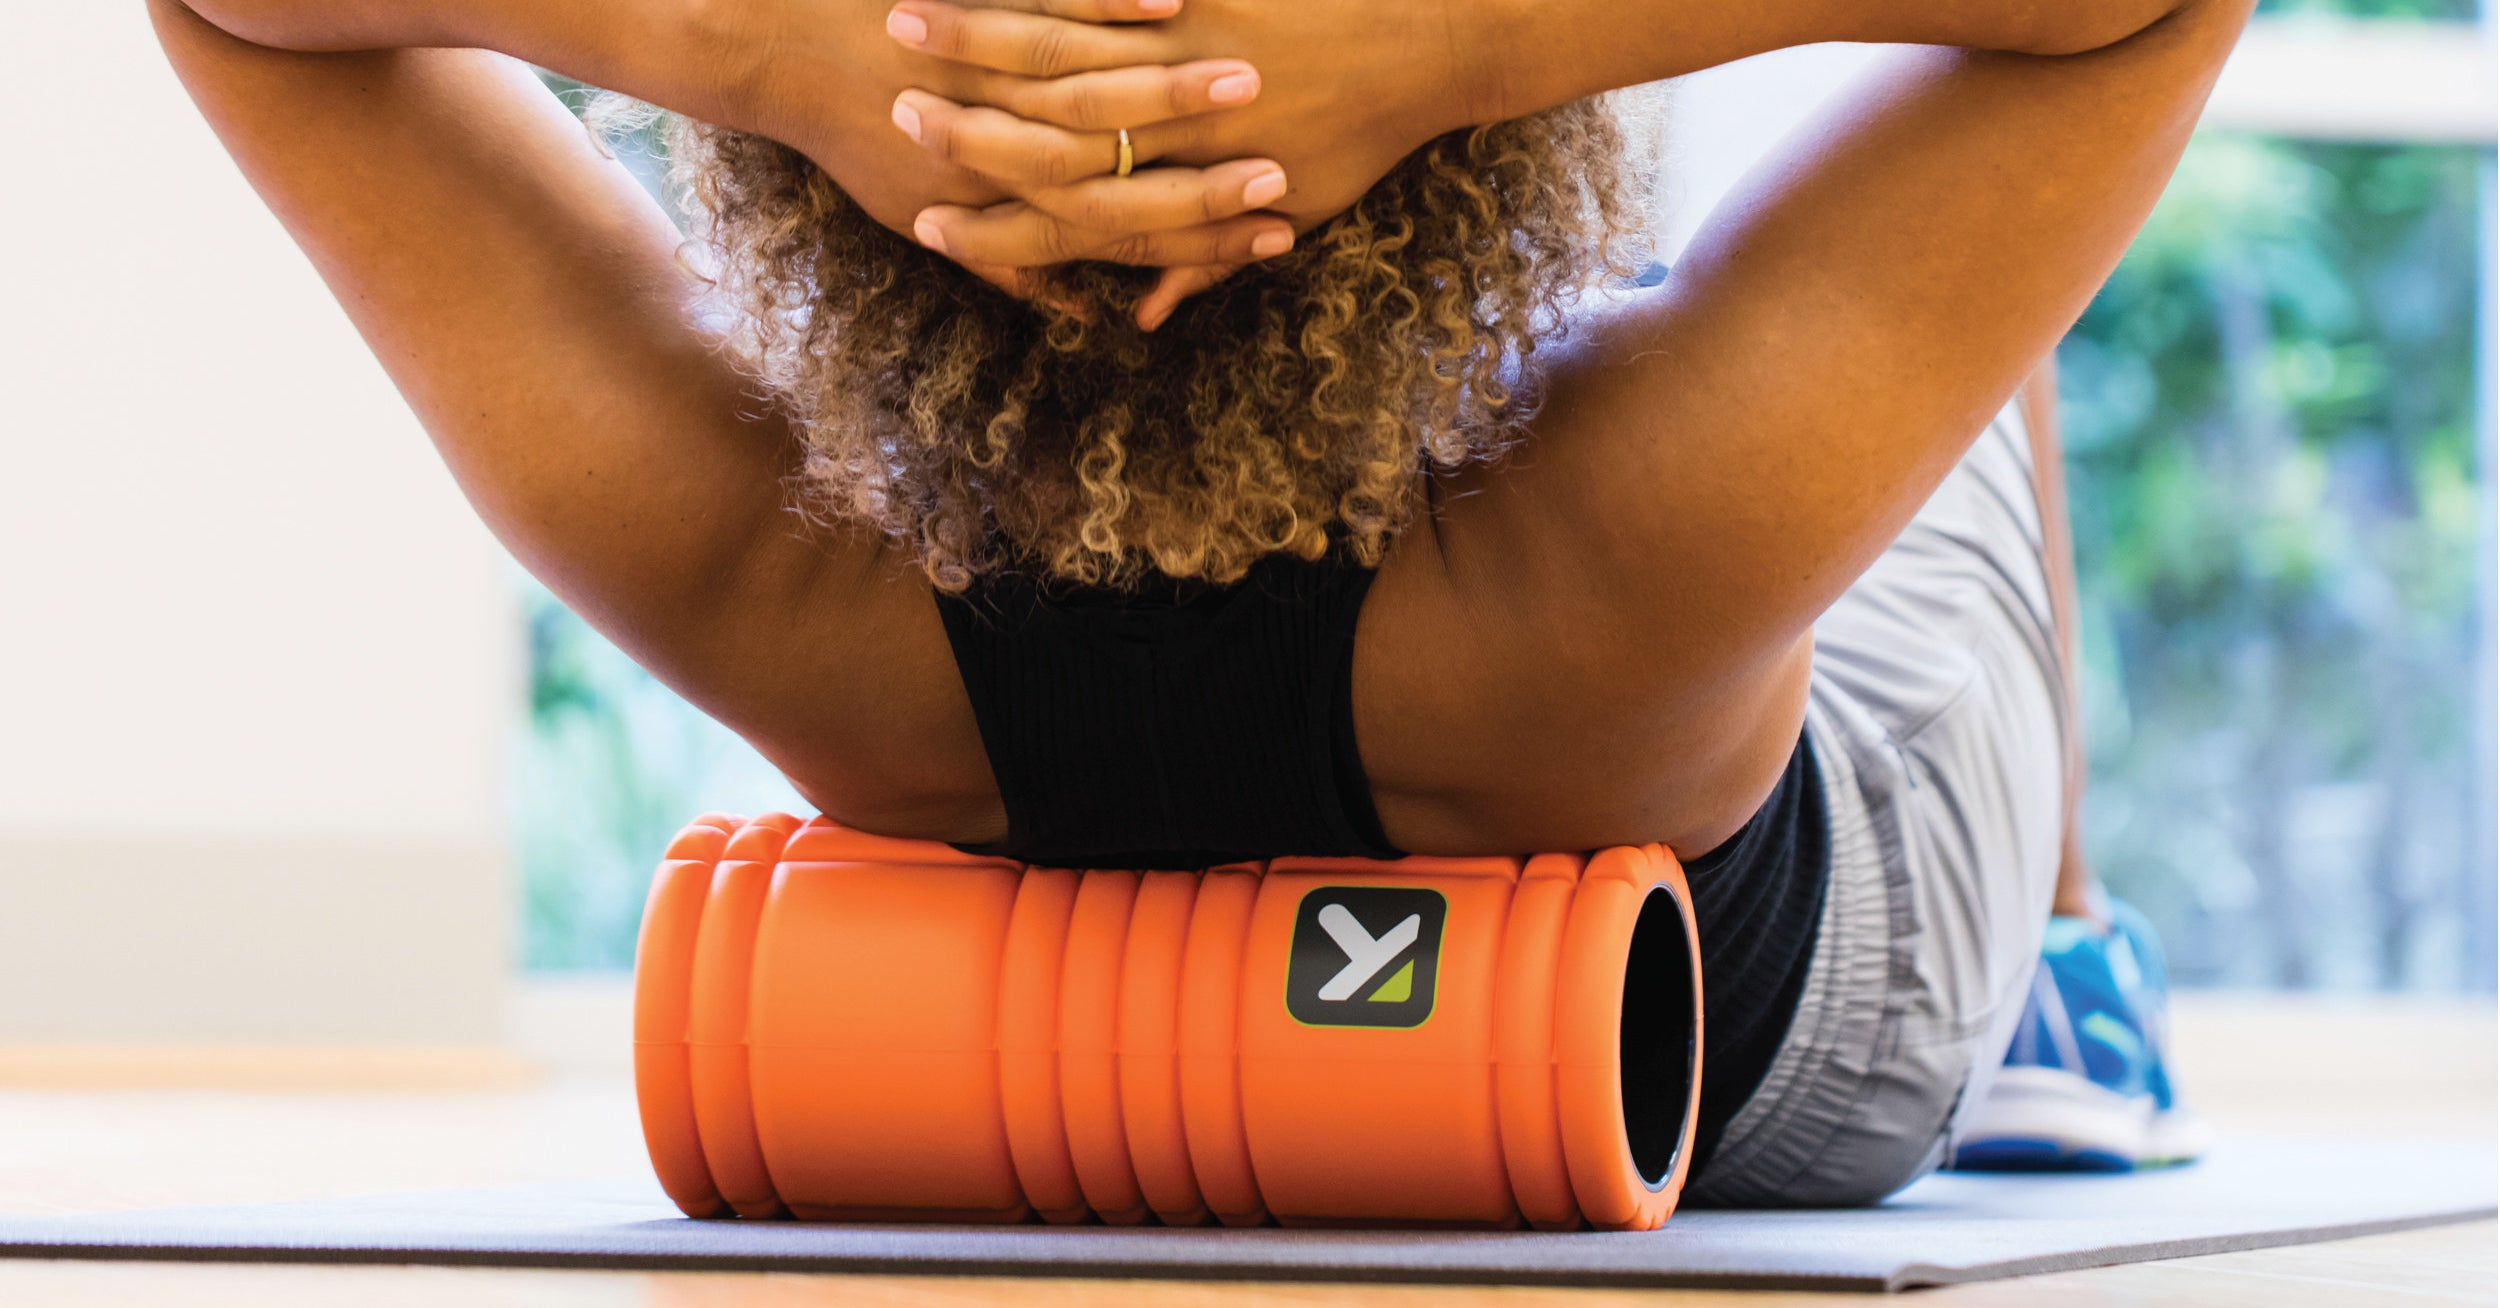 31 Useful Fitness Products You'll Probably Be Surprised You Can Get From Walmart